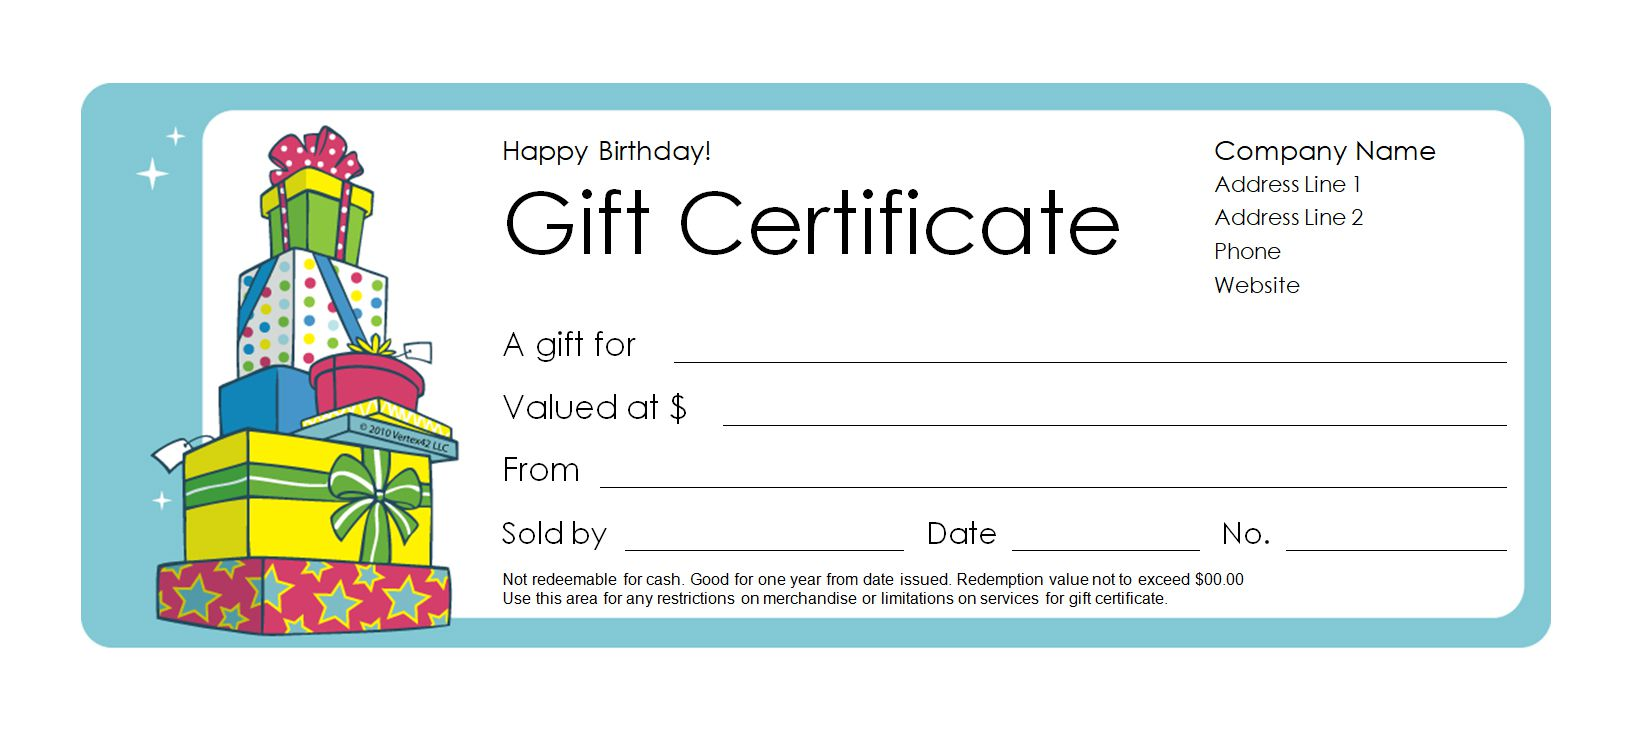 173 free gift certificate templates you can customize a birthday gift certificate template maxwellsz